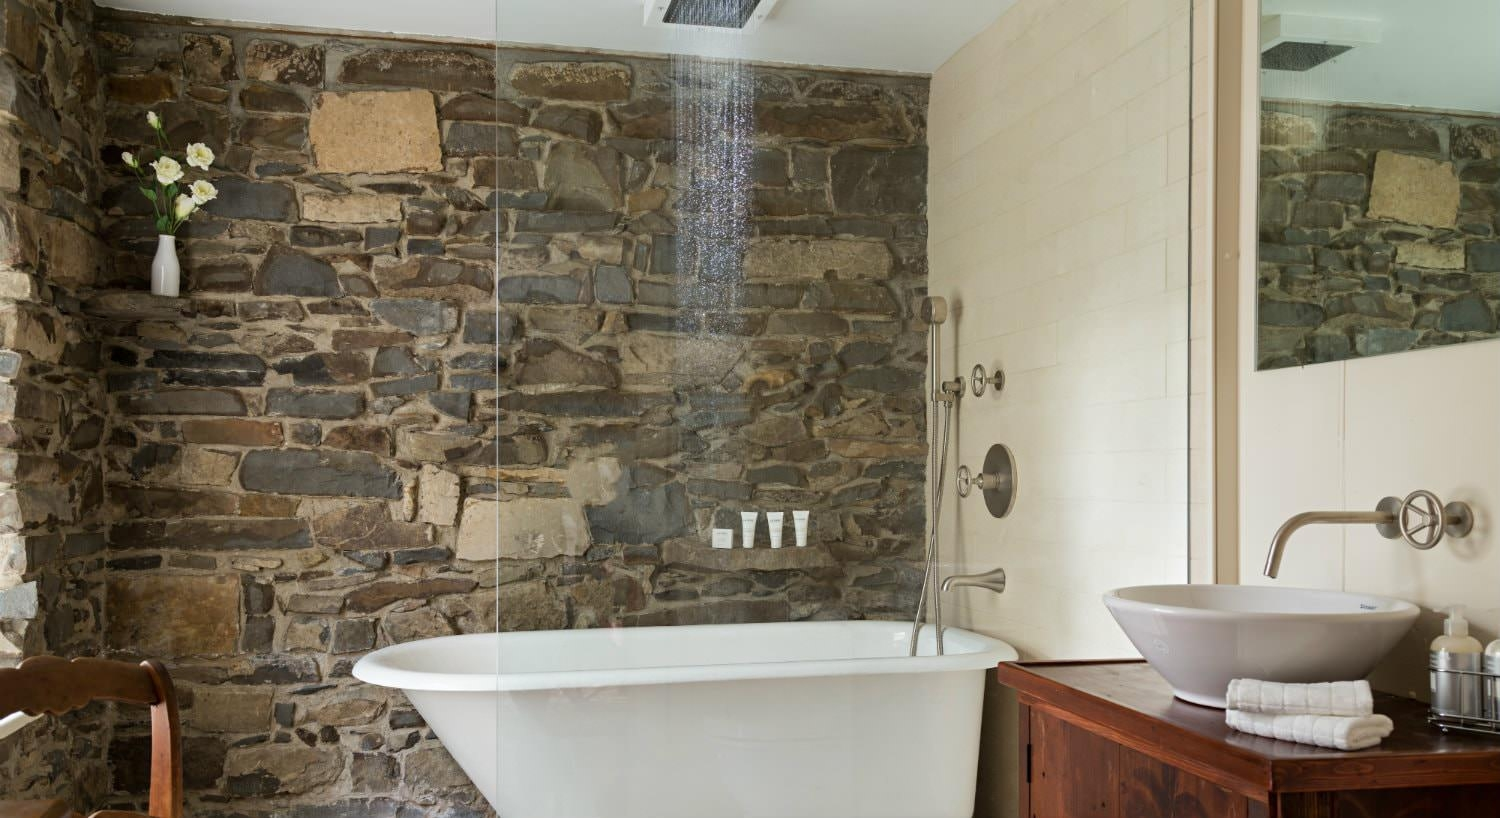 Stone and wood walls, claw foot tub with rain shower head and glass door, vanity with white vessel sink